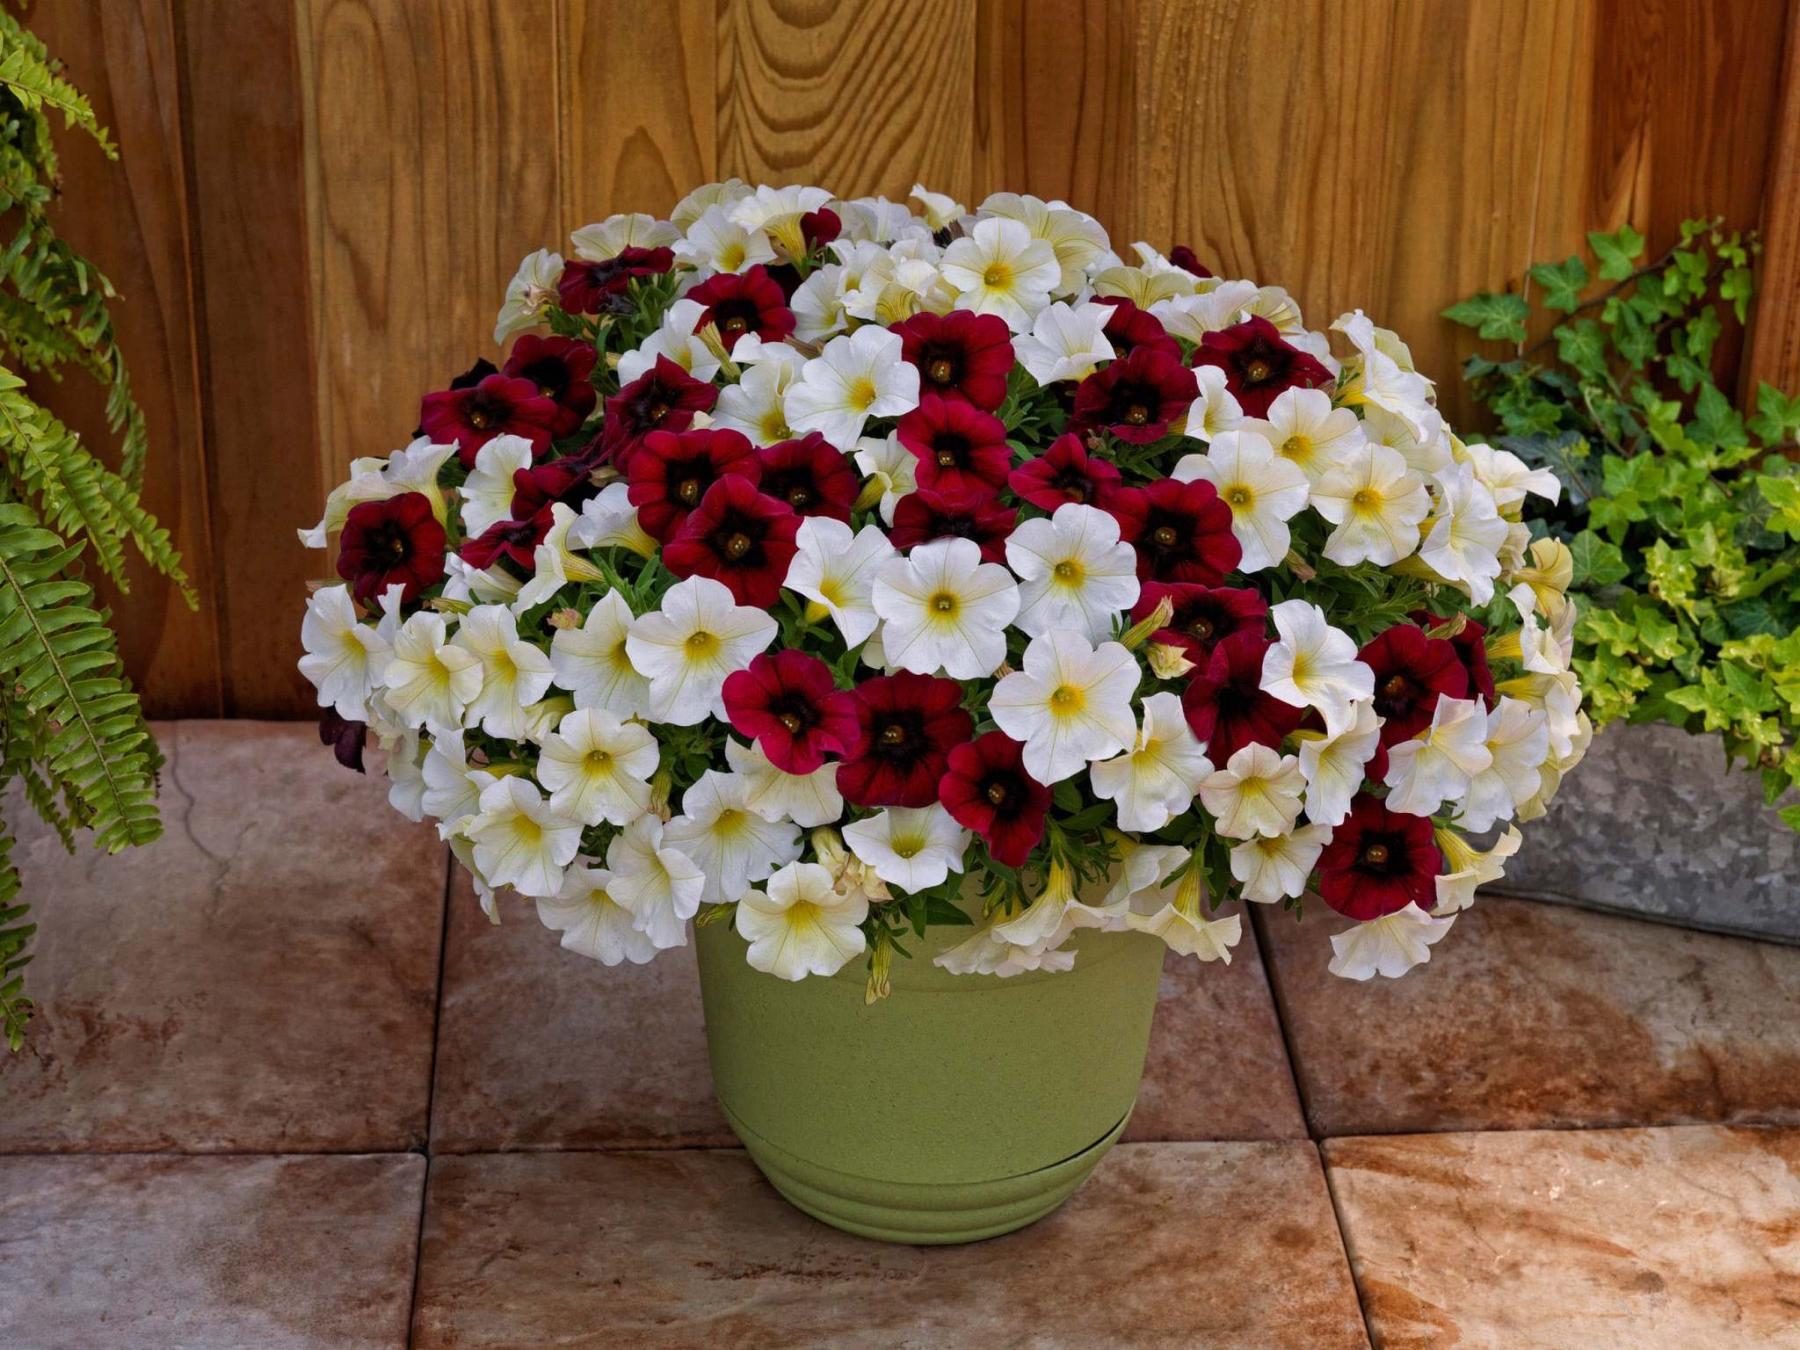 <p>Colleen Zacharias / Winnipeg Free Press</p><p>SuperCal Petchoa combines the best attributes of petunias and calibrachoas.</p>